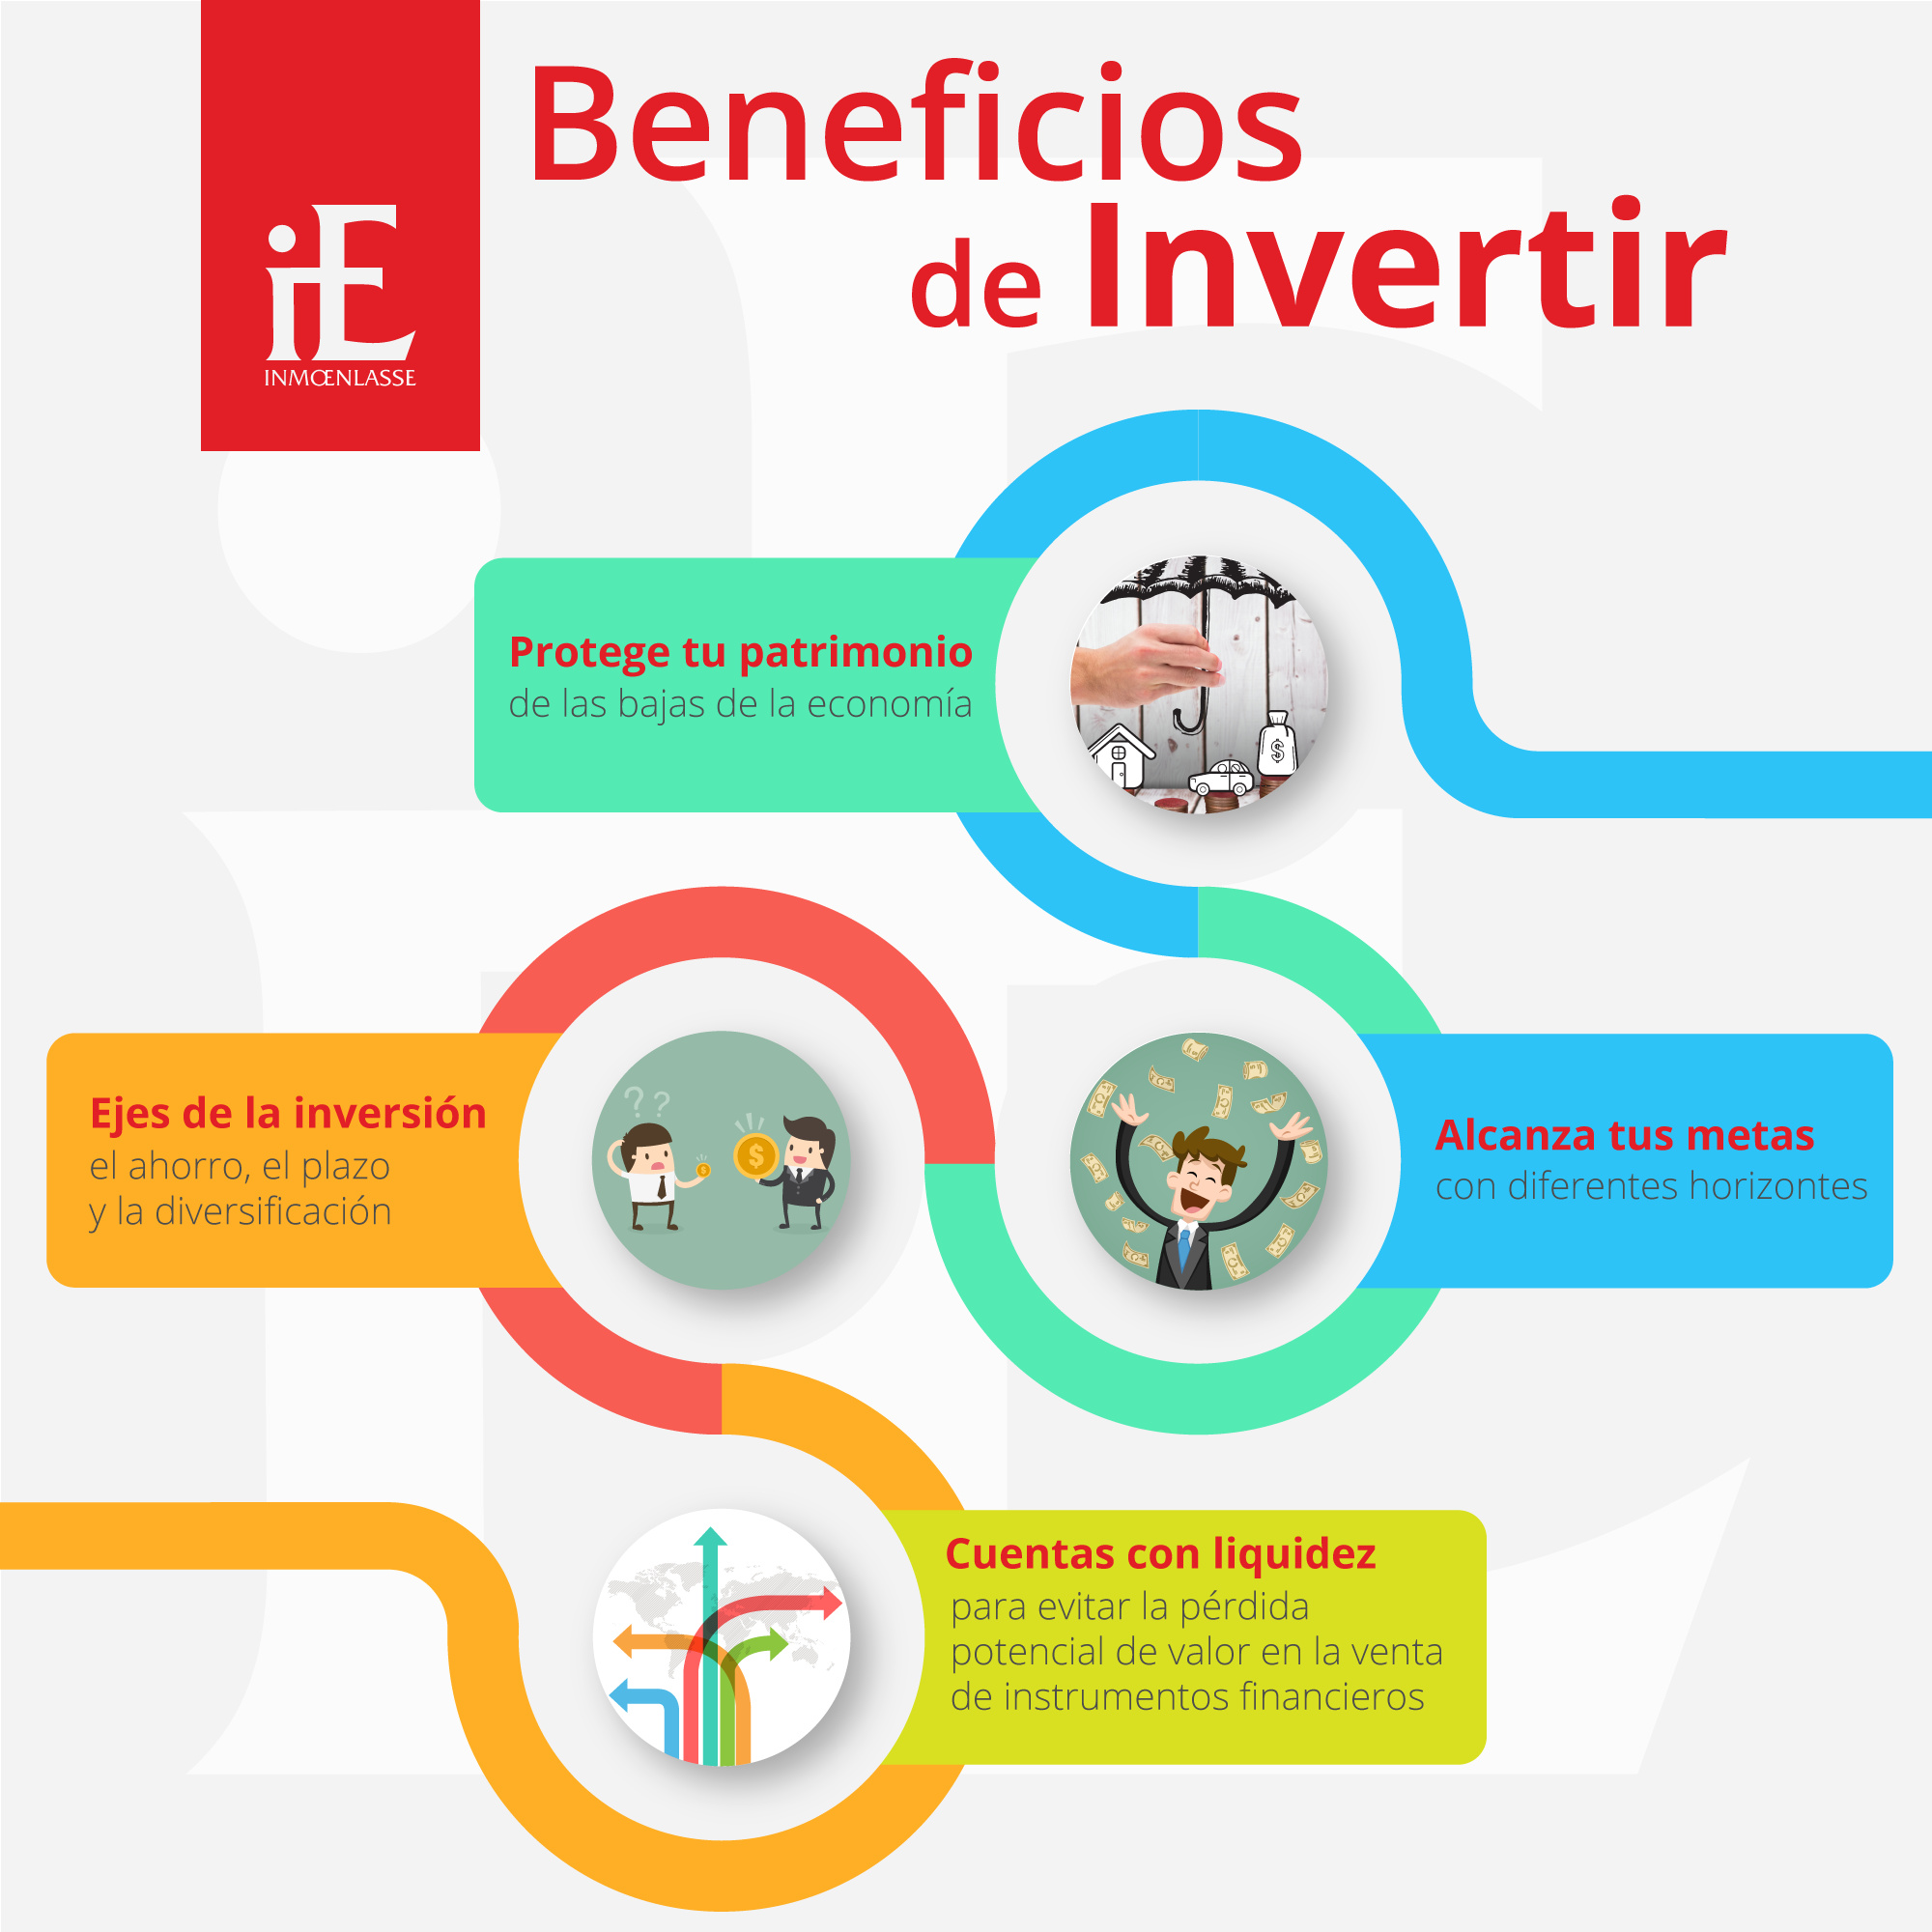 Beneficios de Invertir - infografía